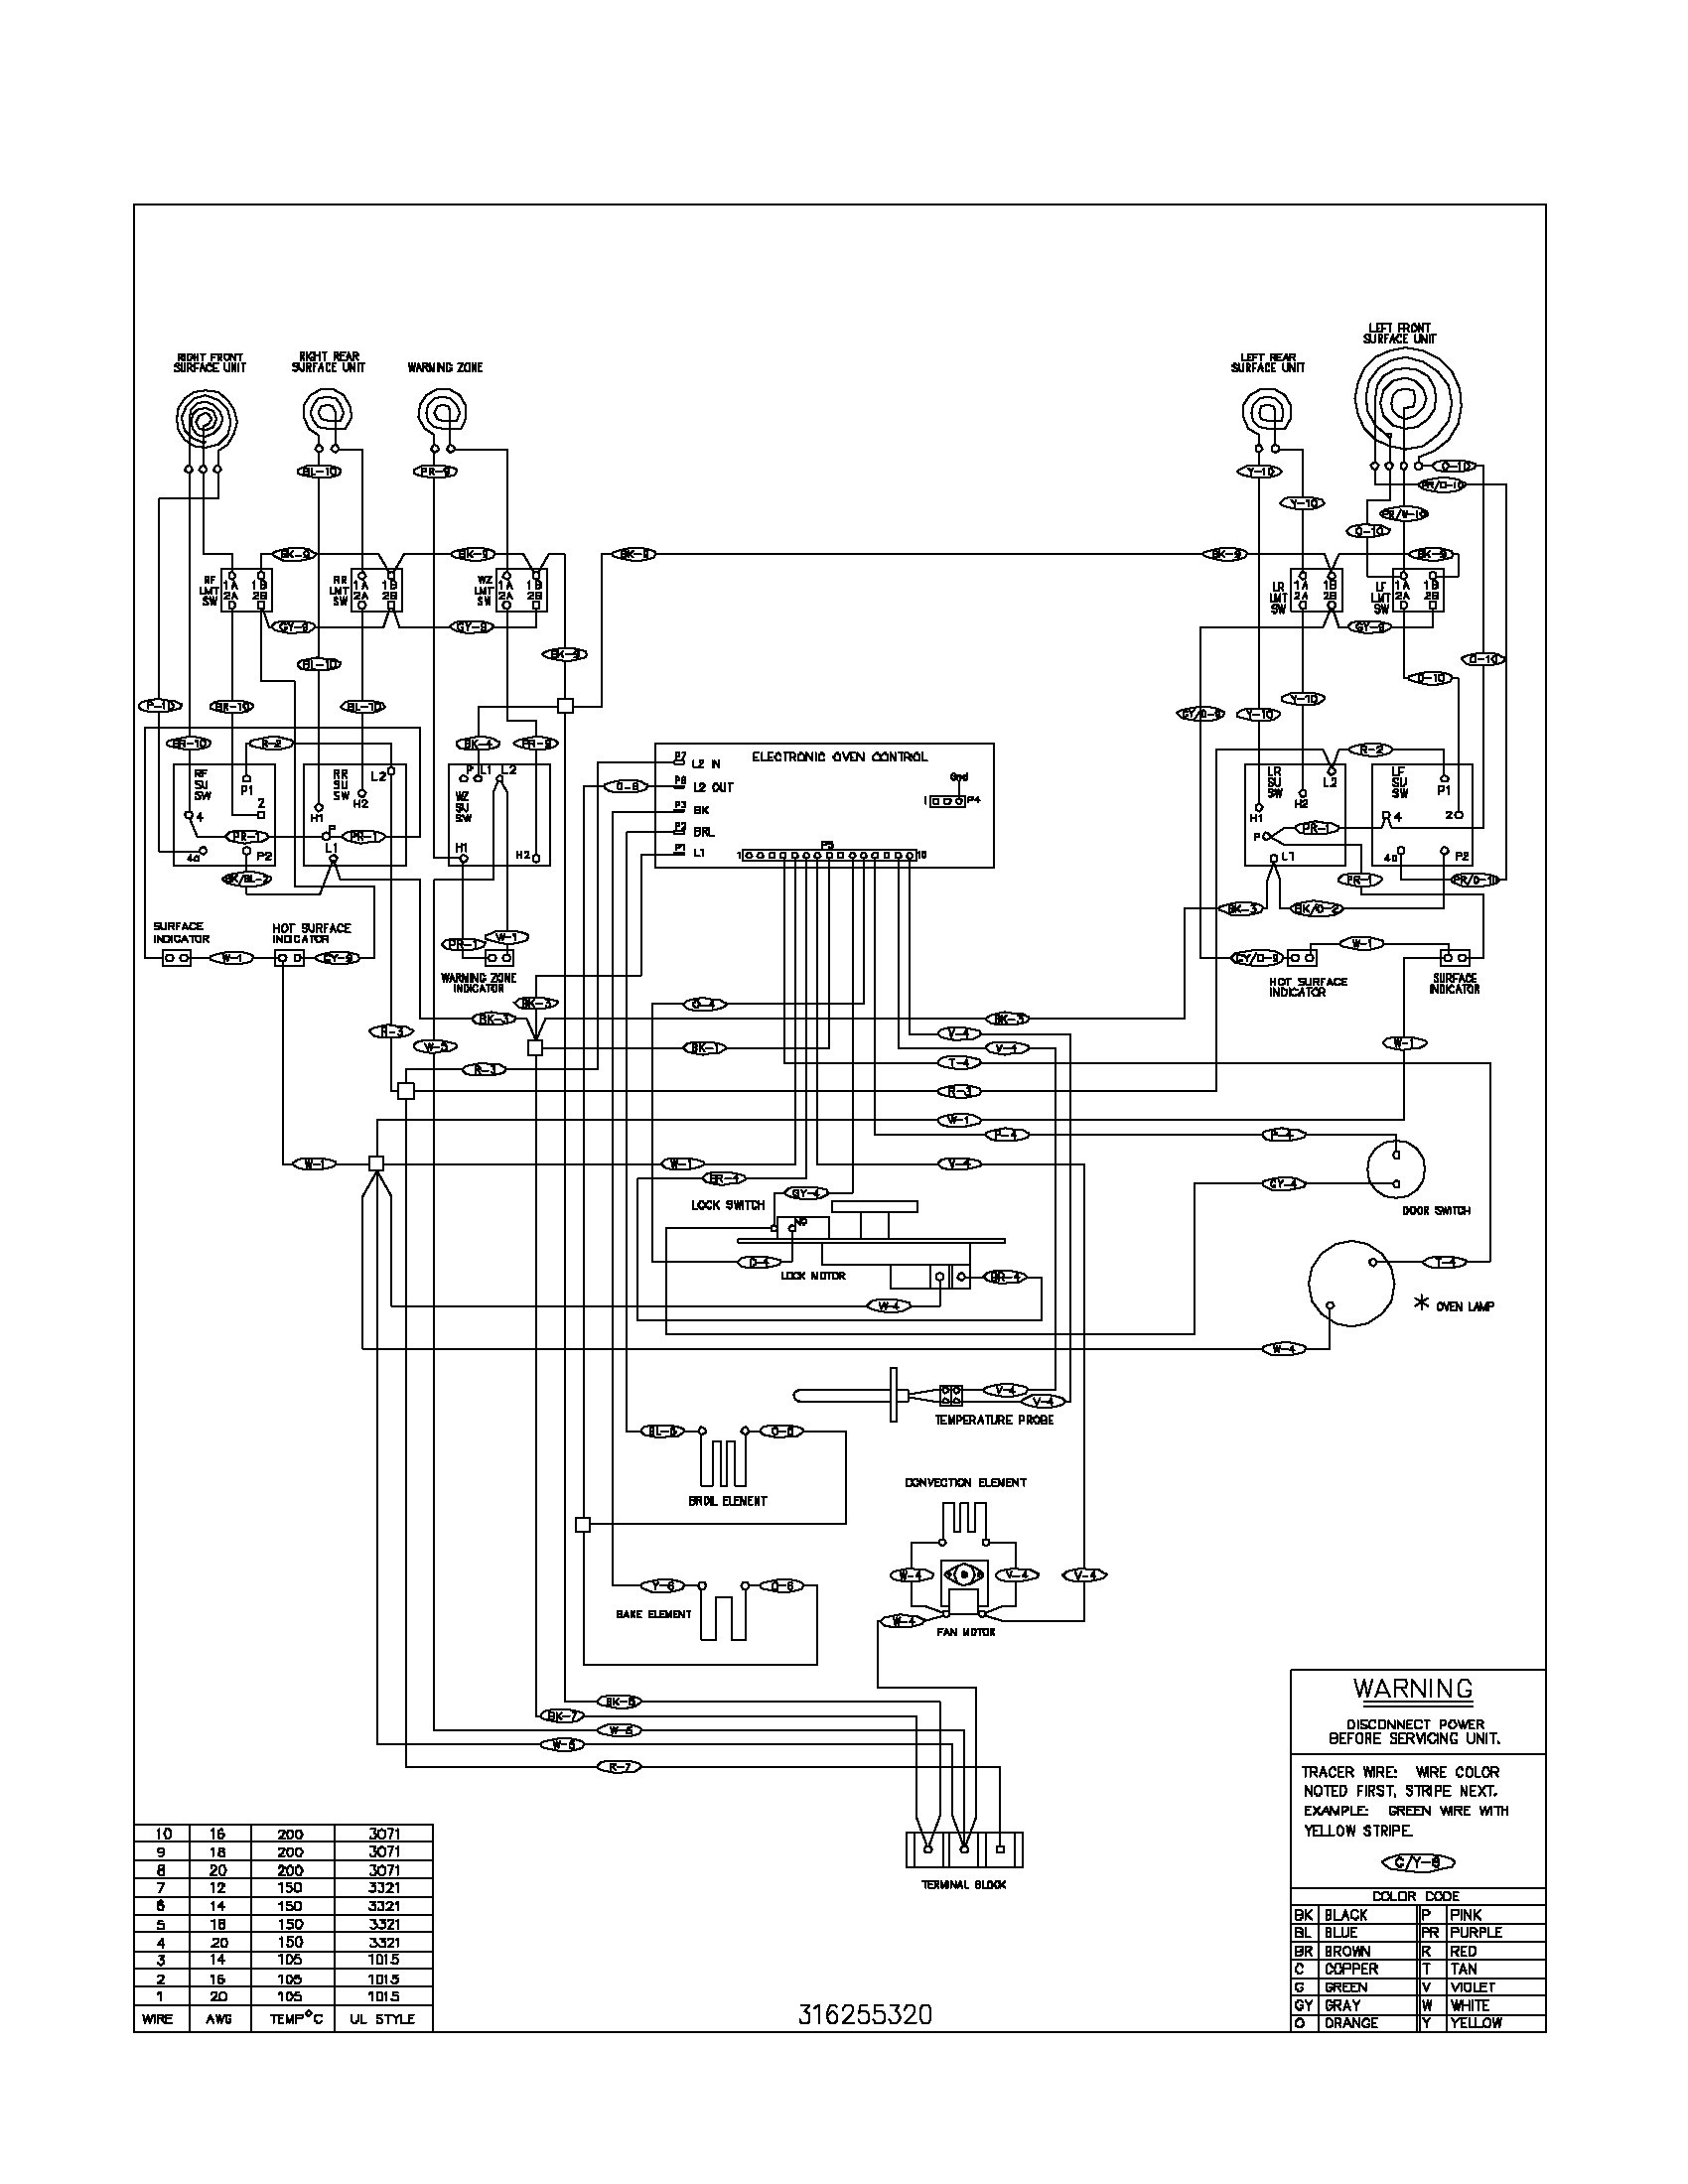 Wiring Diagram Roper Range Enthusiast Wiring Diagrams \u2022 Roper Dryer  Wiring Diagram Wiring Diagram For Roper Stove